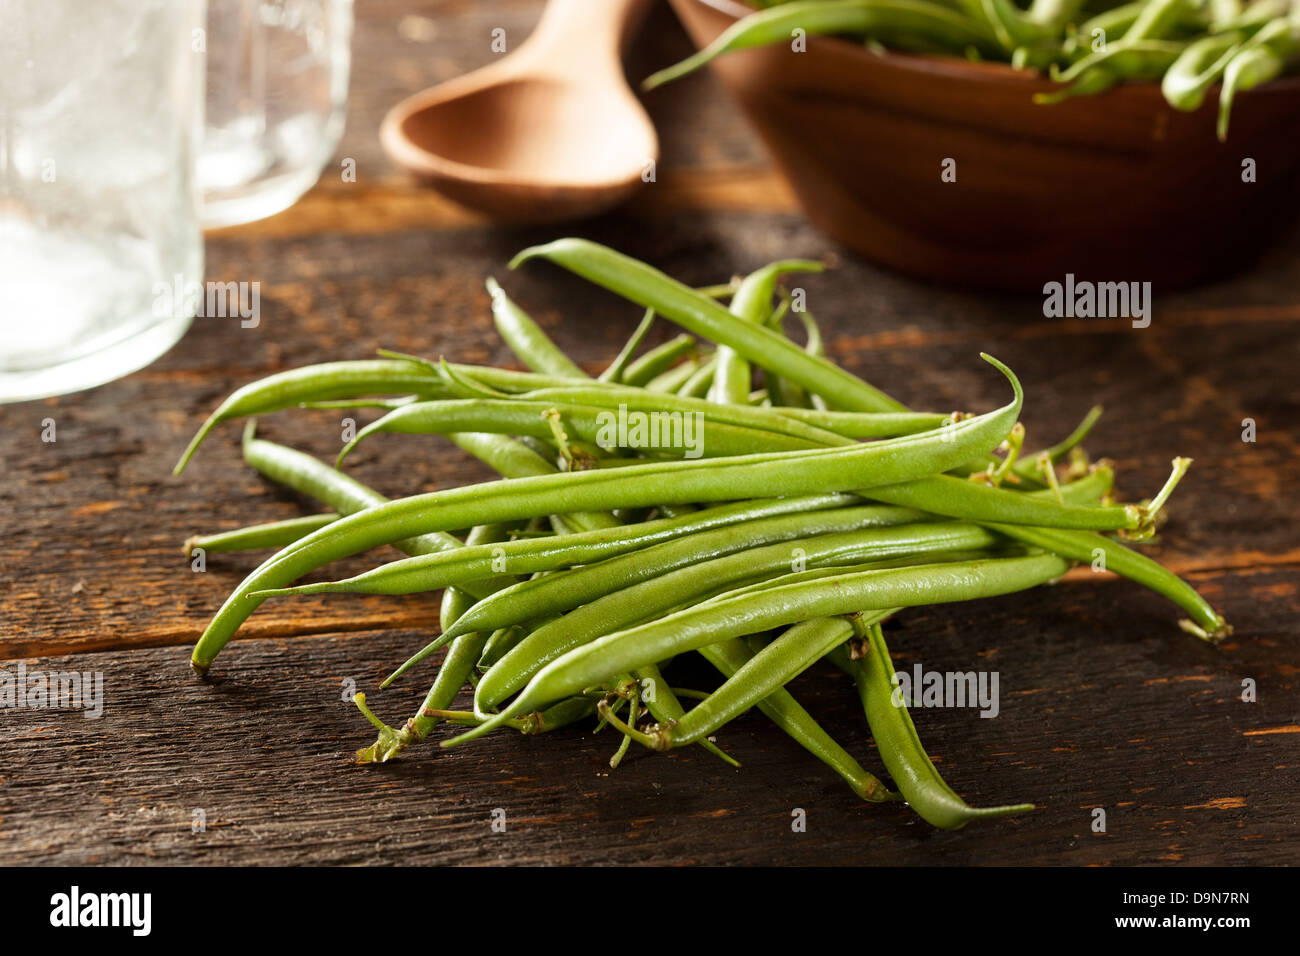 Fresh Organic Raw French Green Beans on a background - Stock Image